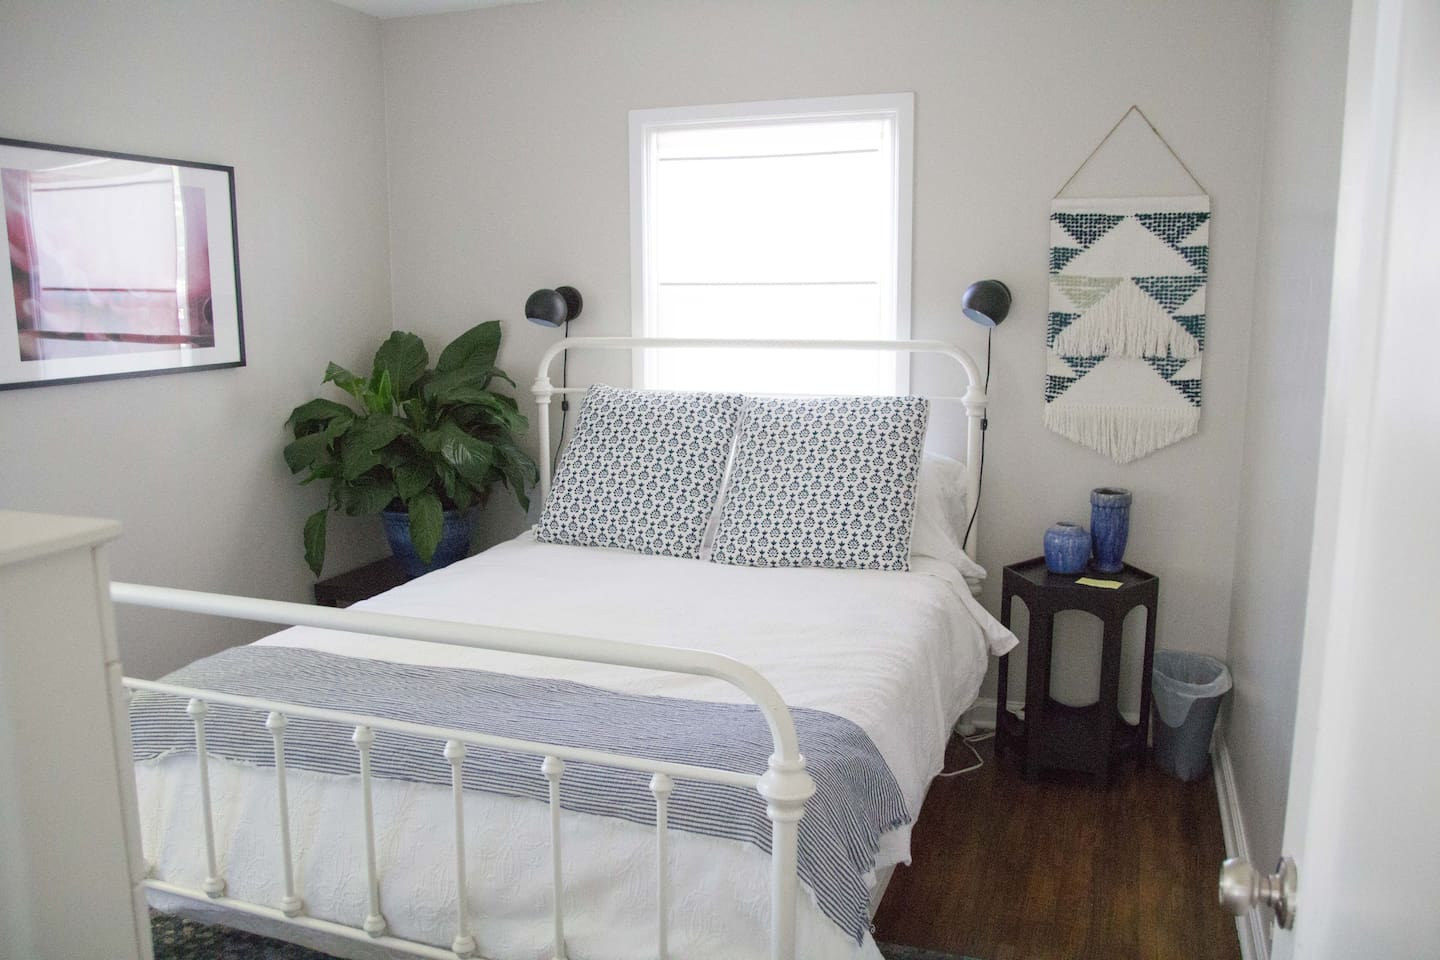 Bright and cozy queen sized bed